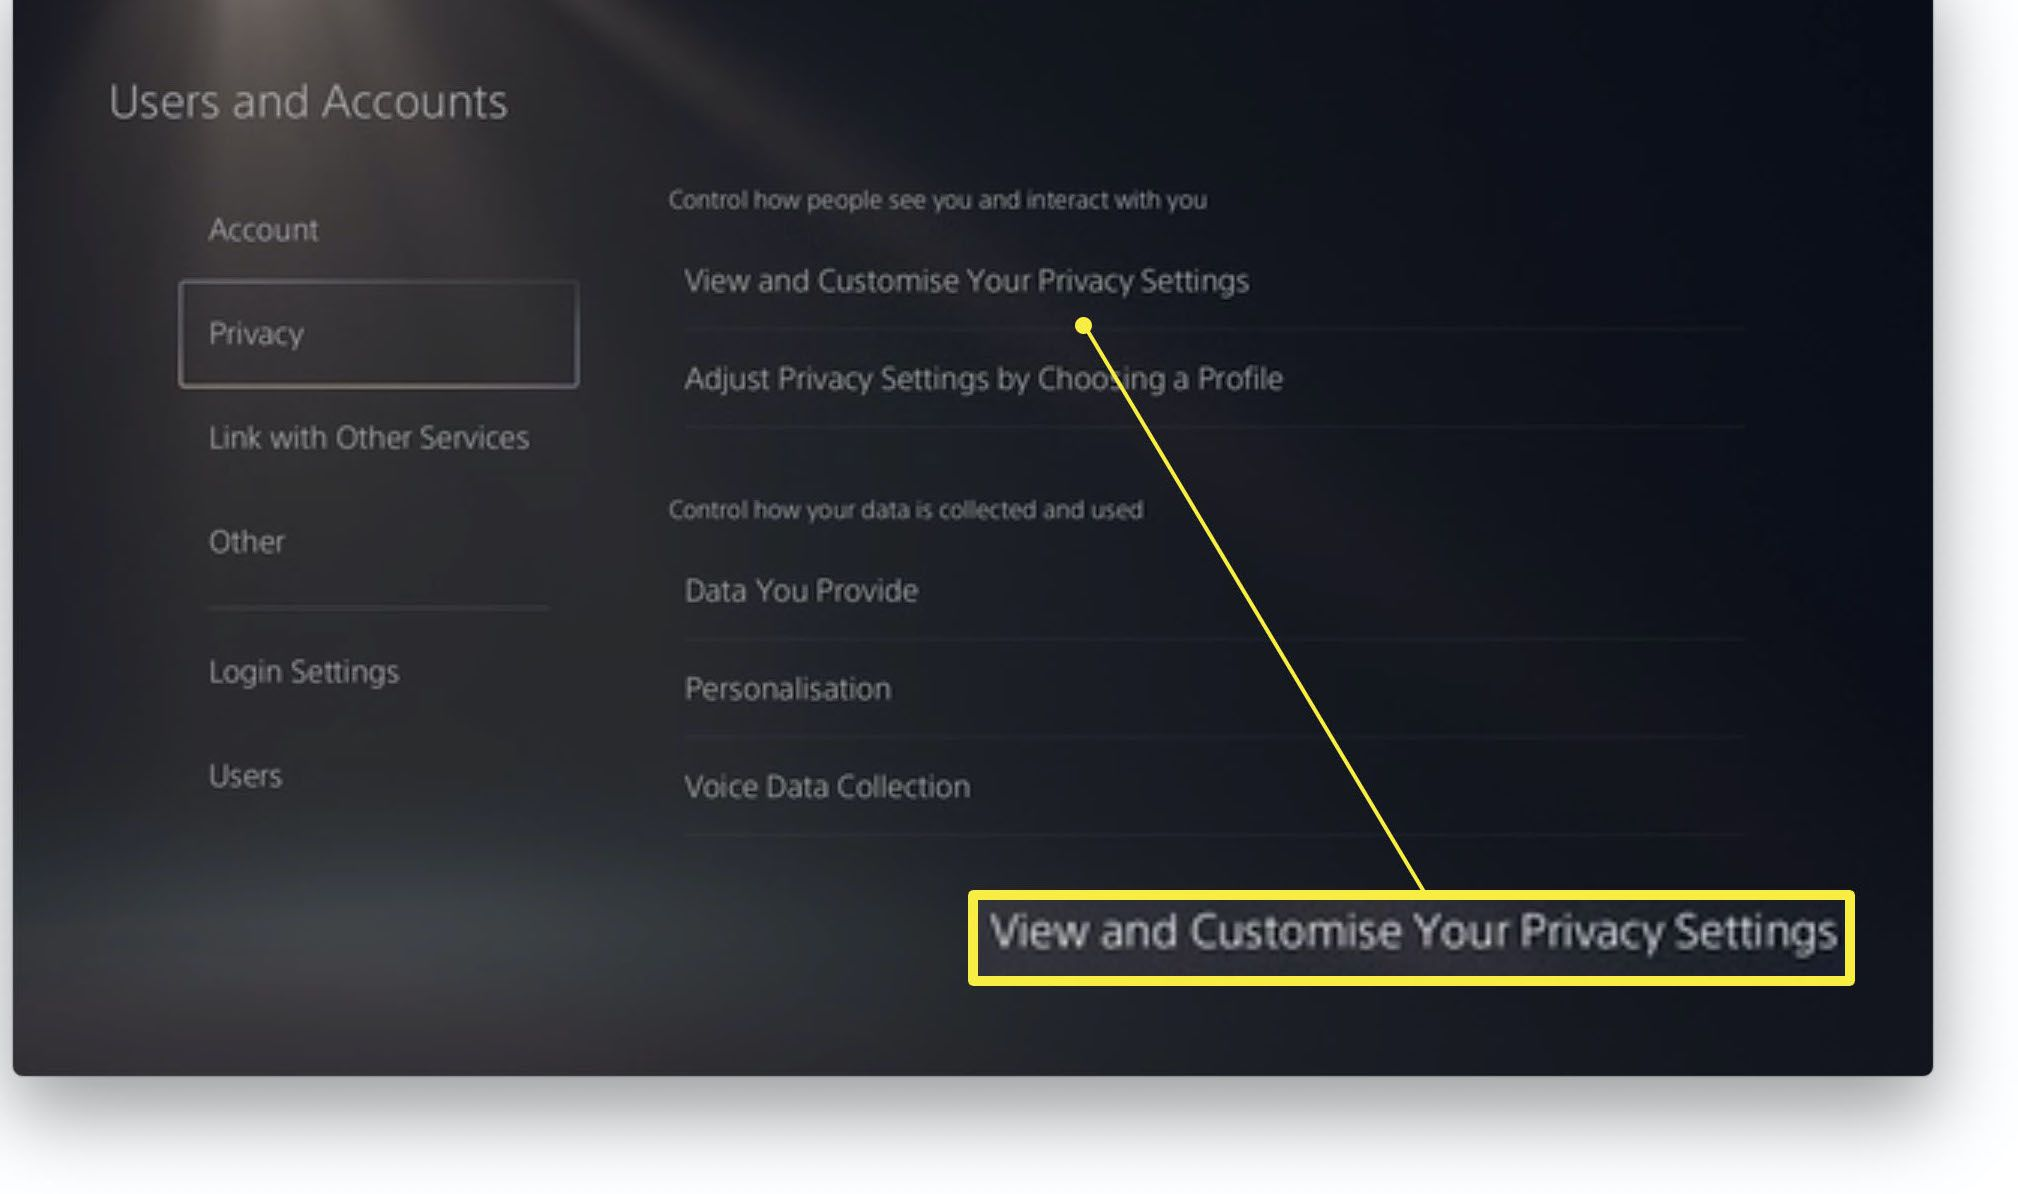 PlayStation 5 Users and Accounts settings with View and Customize your privacy settings highlighted